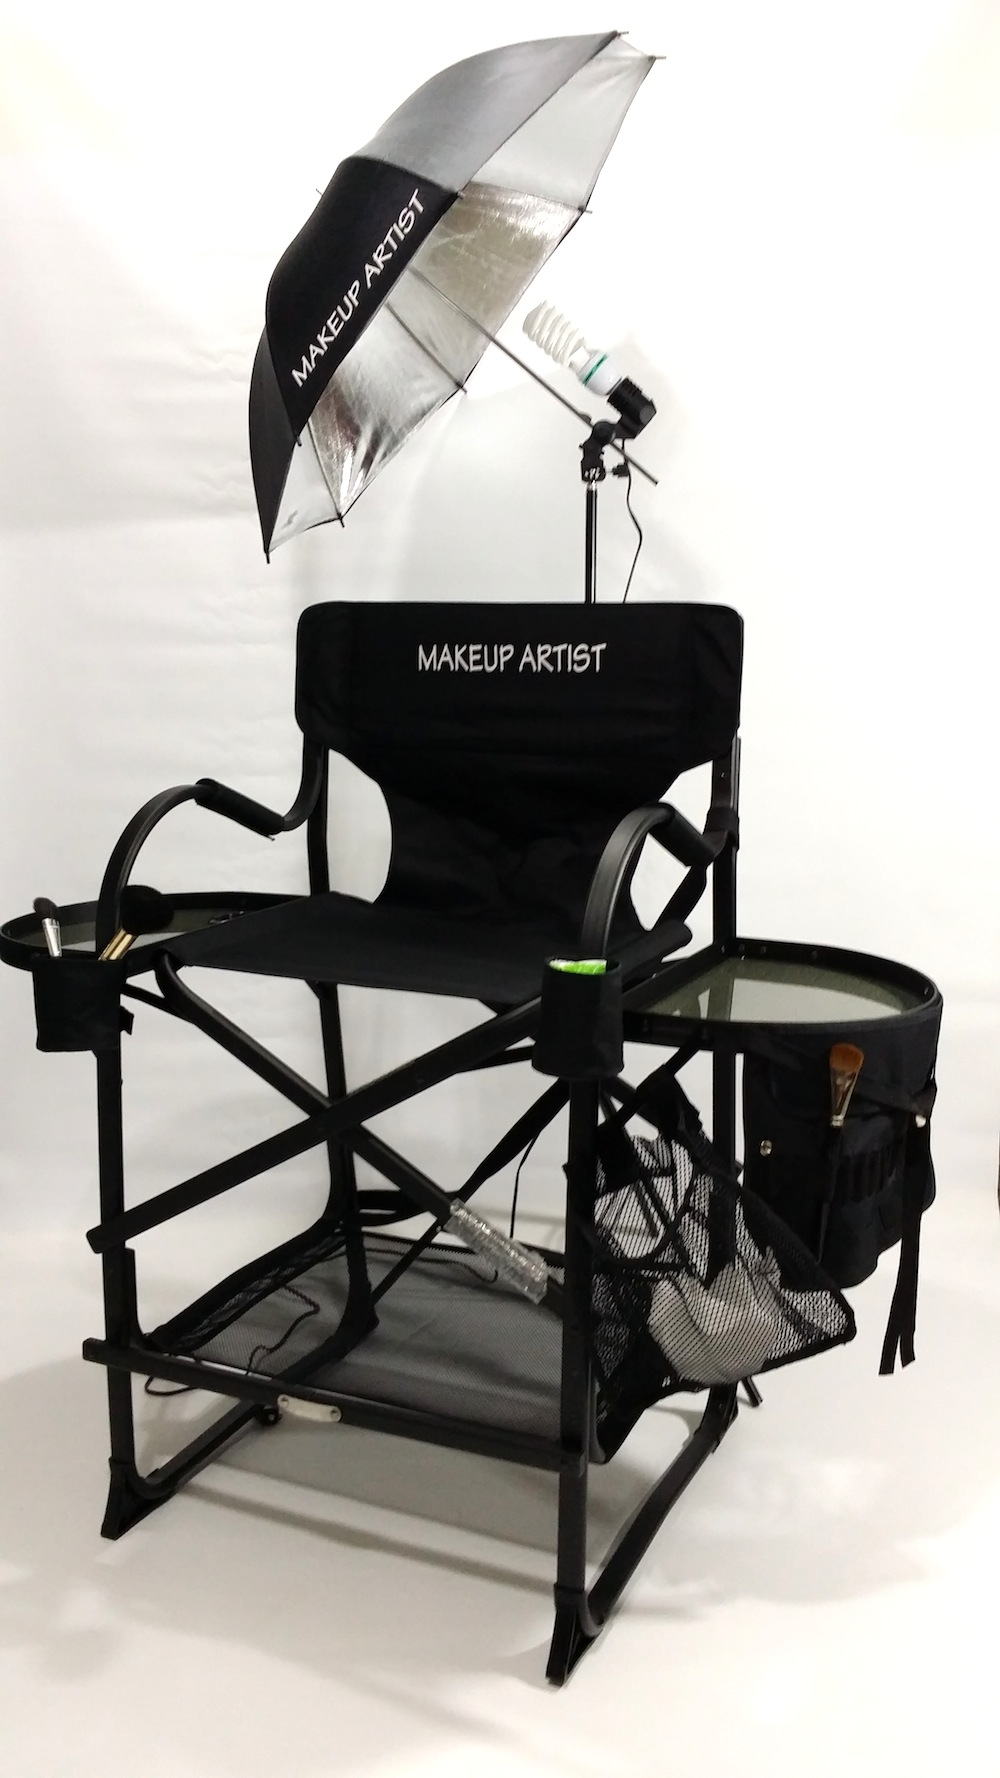 make up chair office clipart as seen on tv the original tuscany pro tall makeup artist portable w light system 29 seat height carry bag included